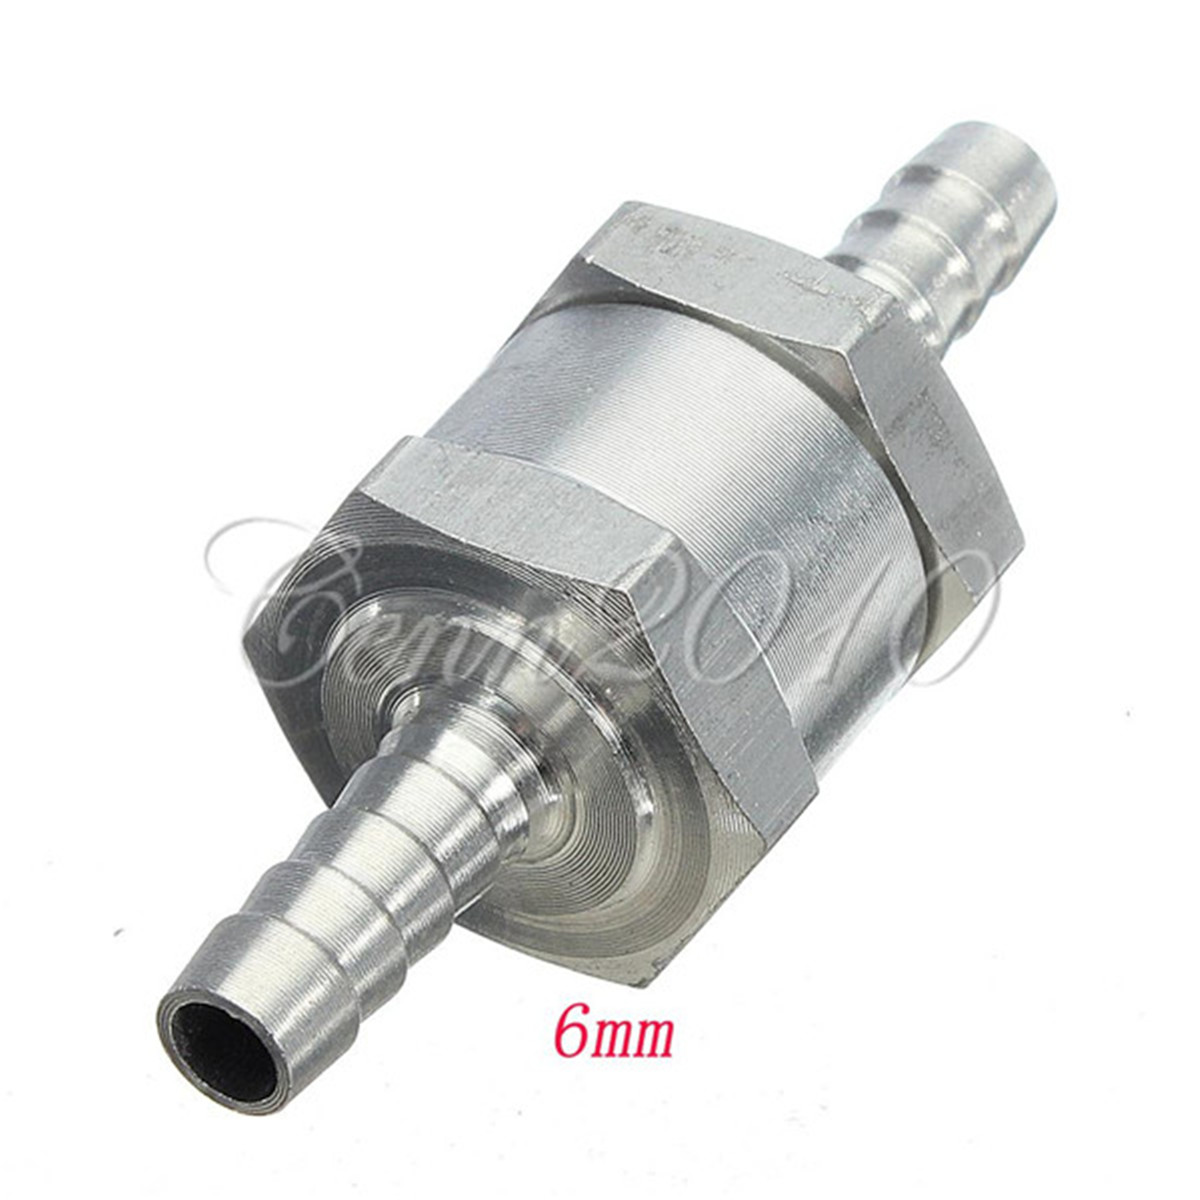 6mm Aluminium Chrome Alloy Fuel Non Return Check Valve One Way Petrol For Diesel pp plastic aquarium check valve non return valve no return valve prevent water back to pump size 3mm 4mm 5mm 6mm 8mm 10mm 12mm